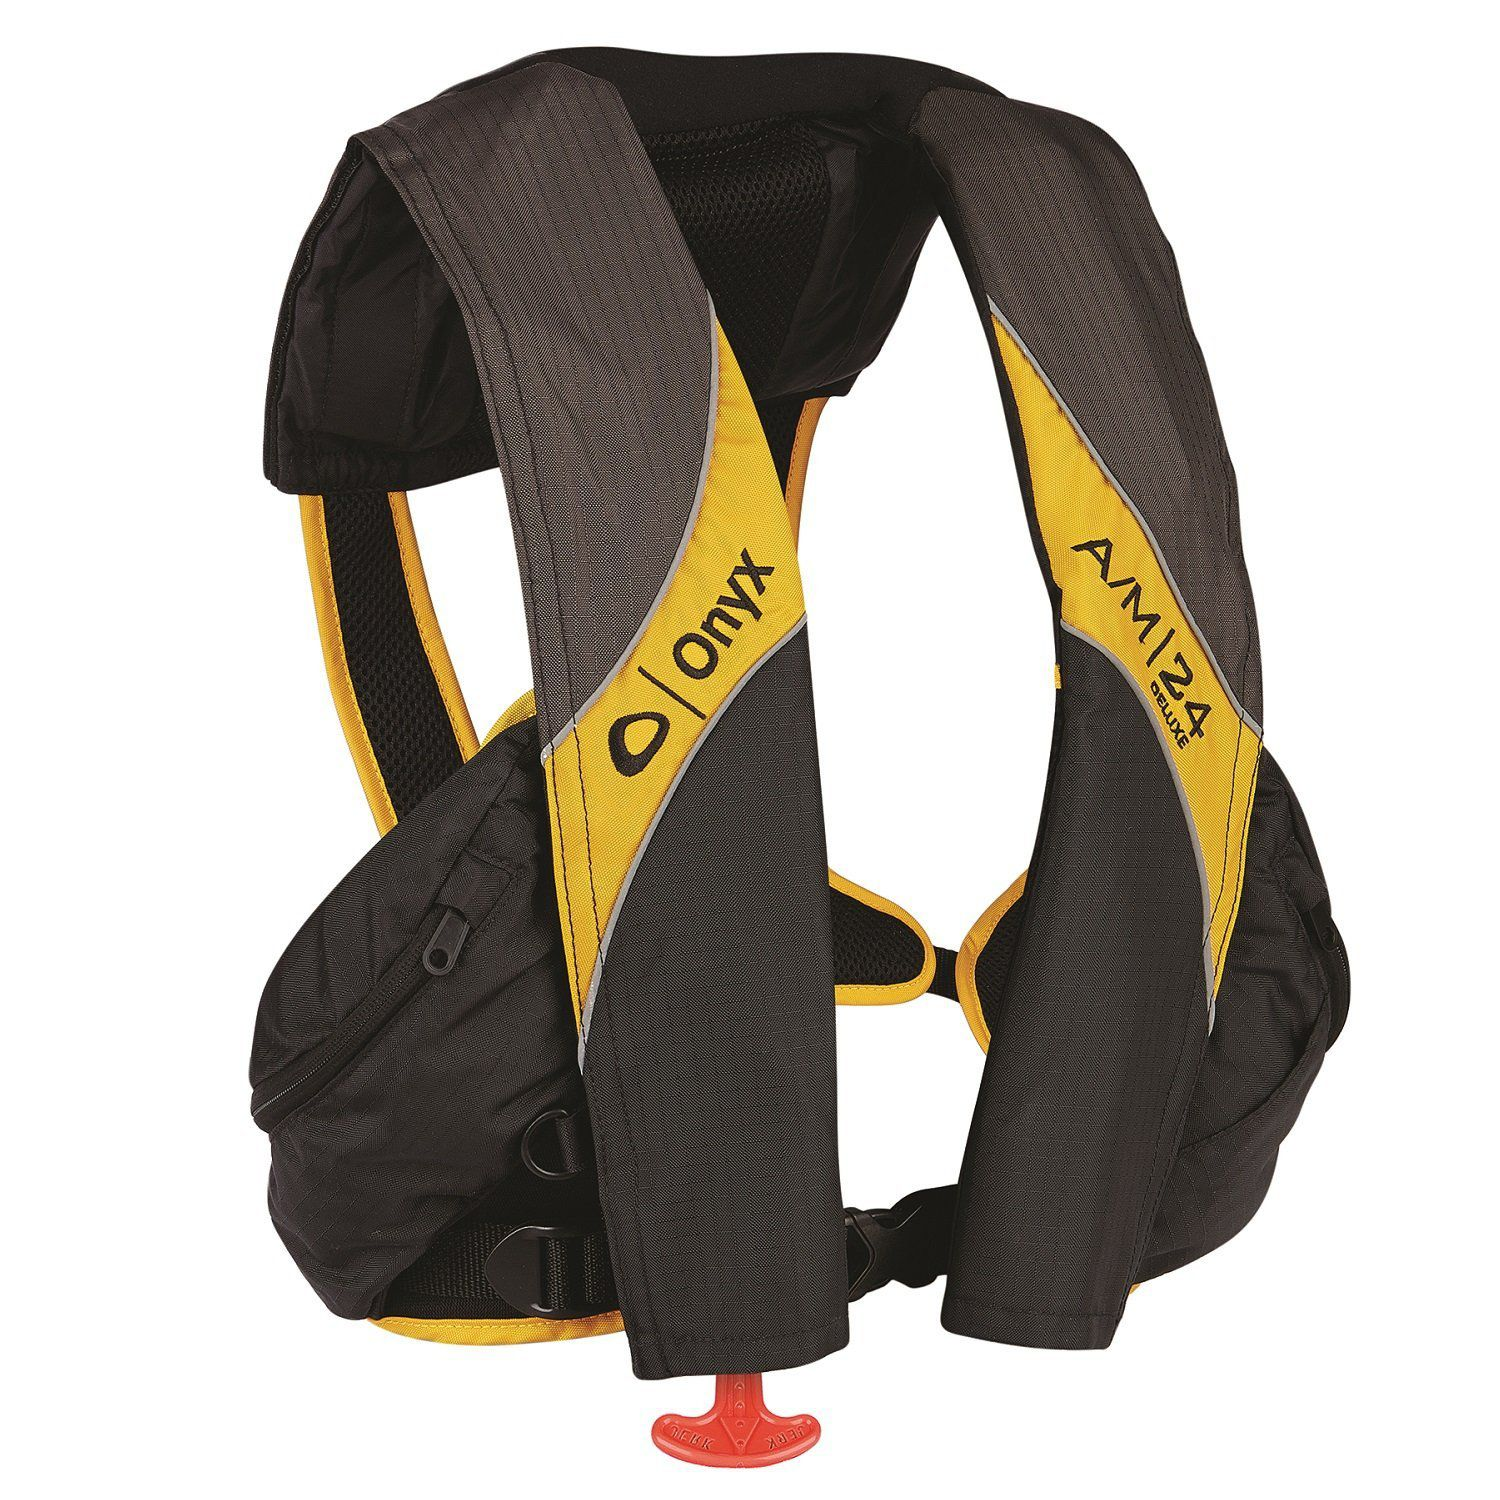 New Rapid Inflatable Life Jacket Life Vest for Adults Children 200 Pounds